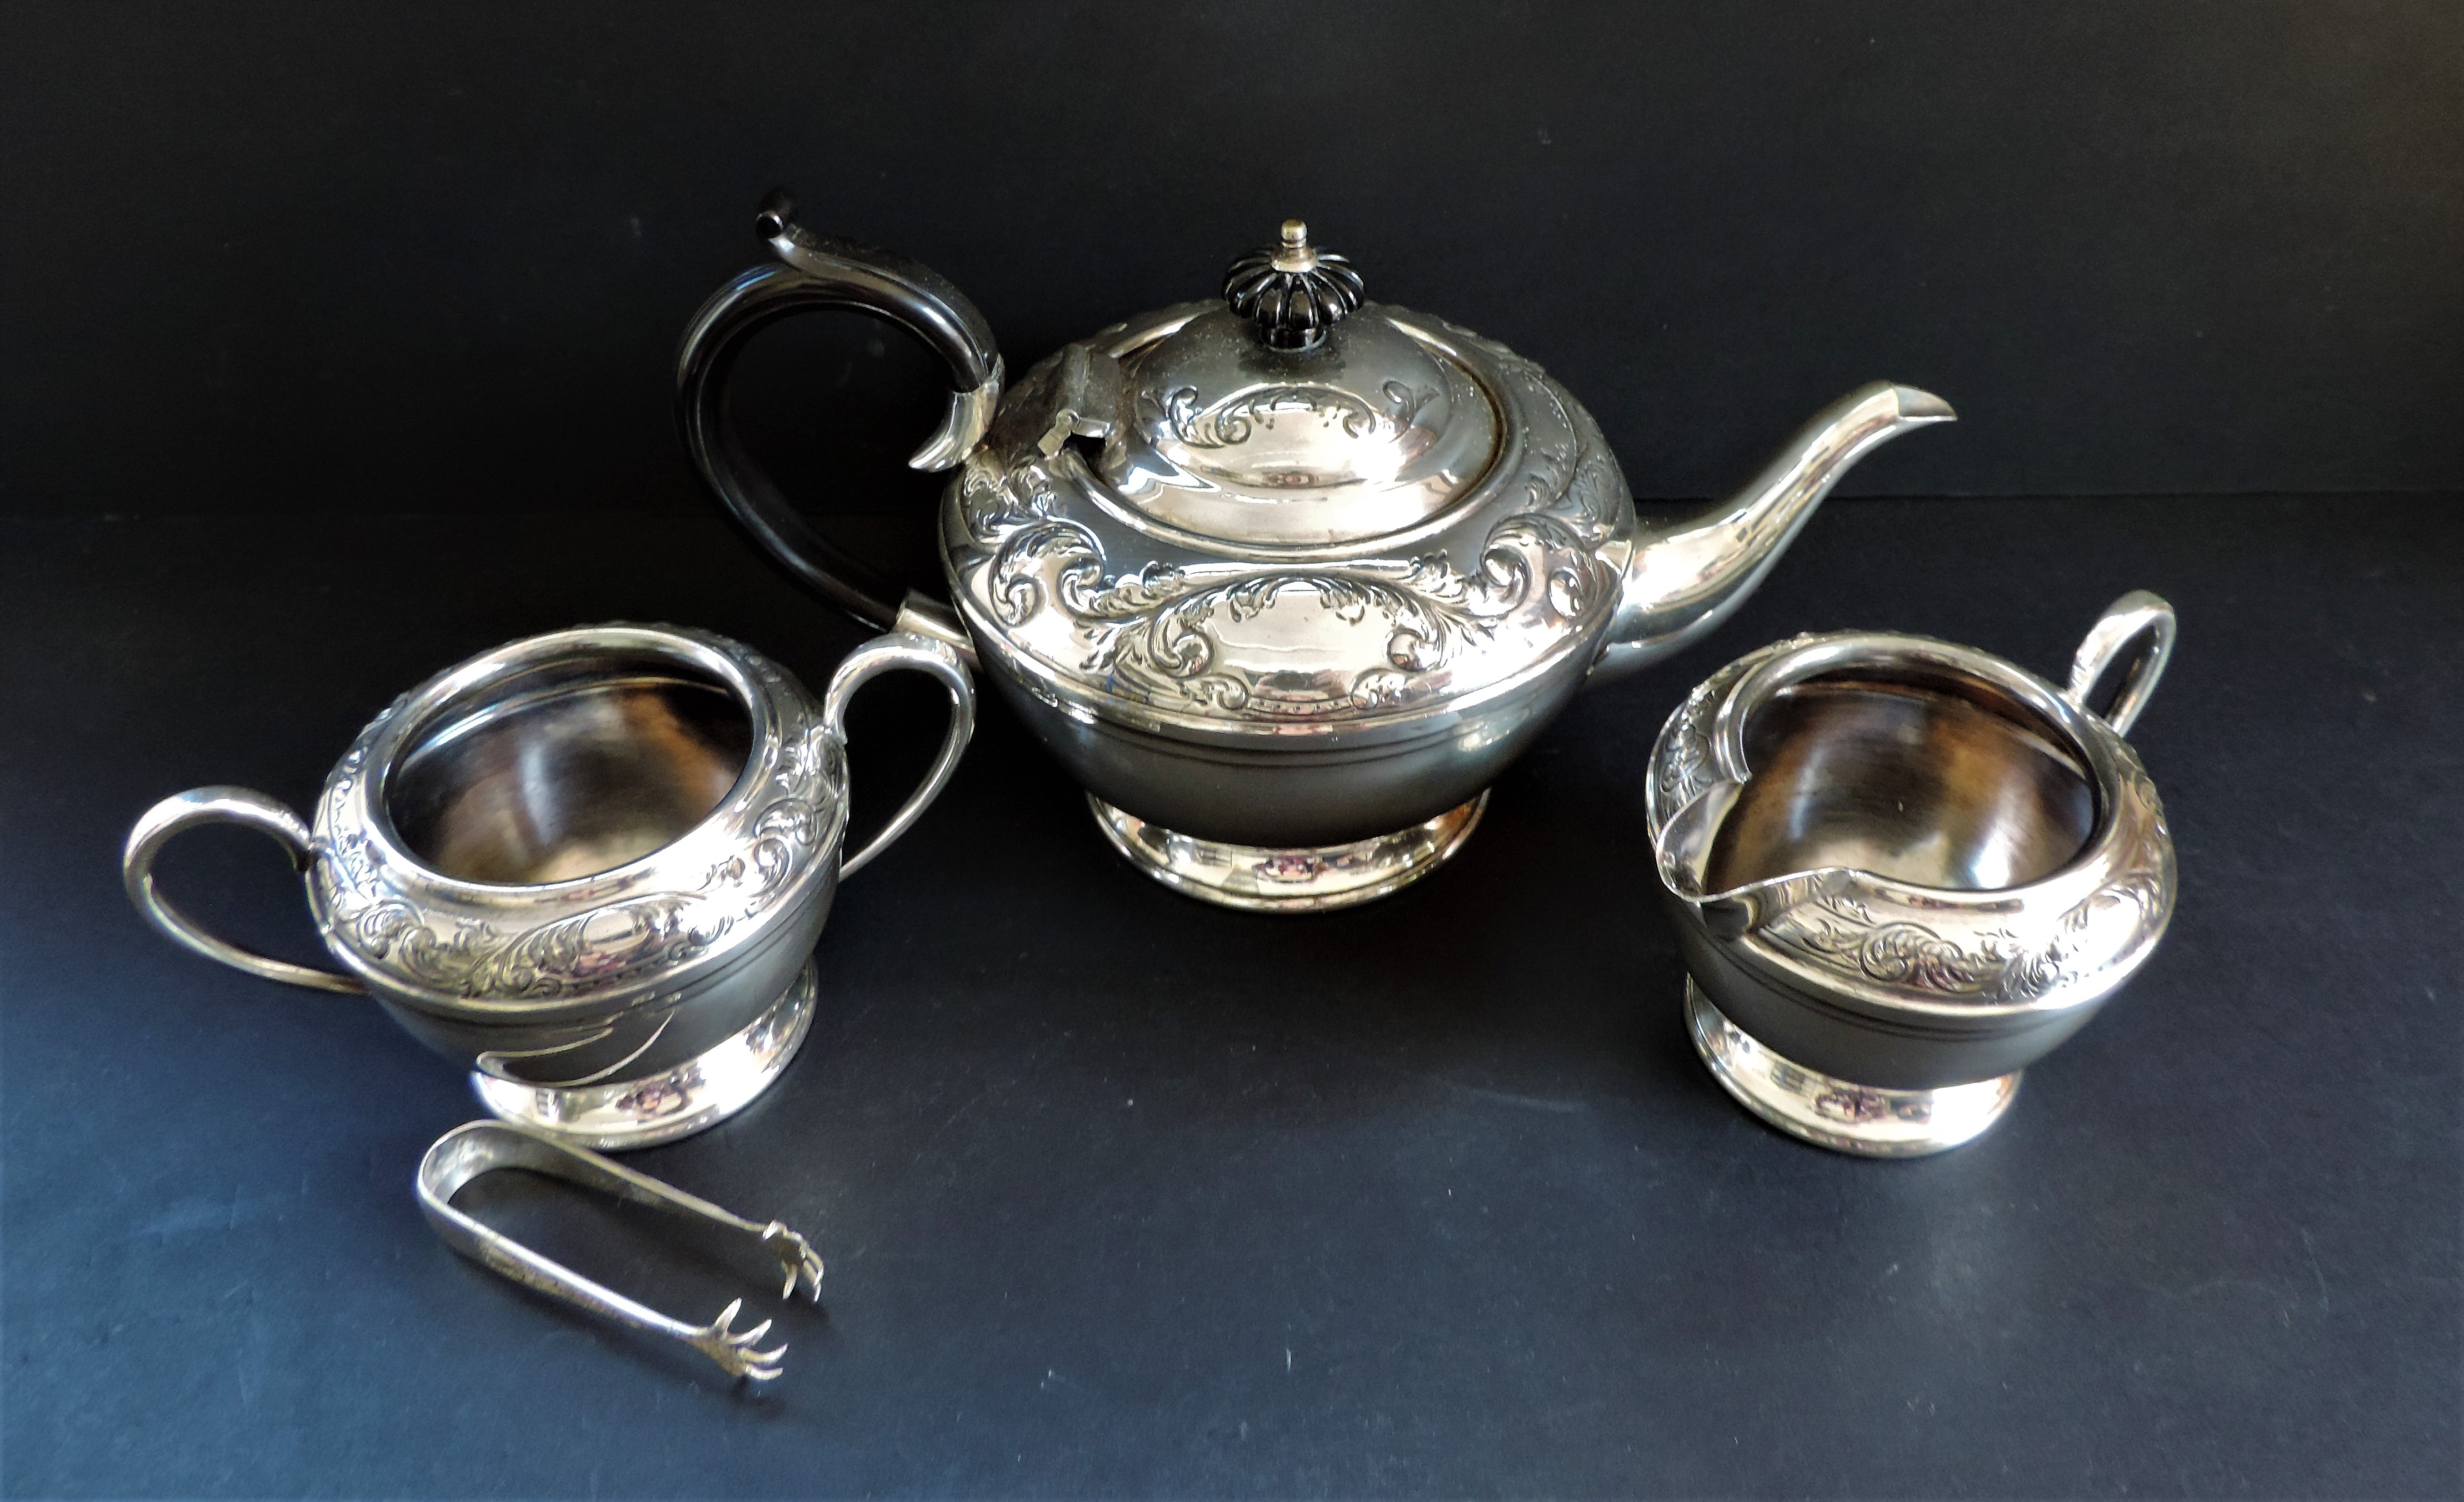 Antique Silver Plated Repousse Decorated Tea Set - Image 2 of 7